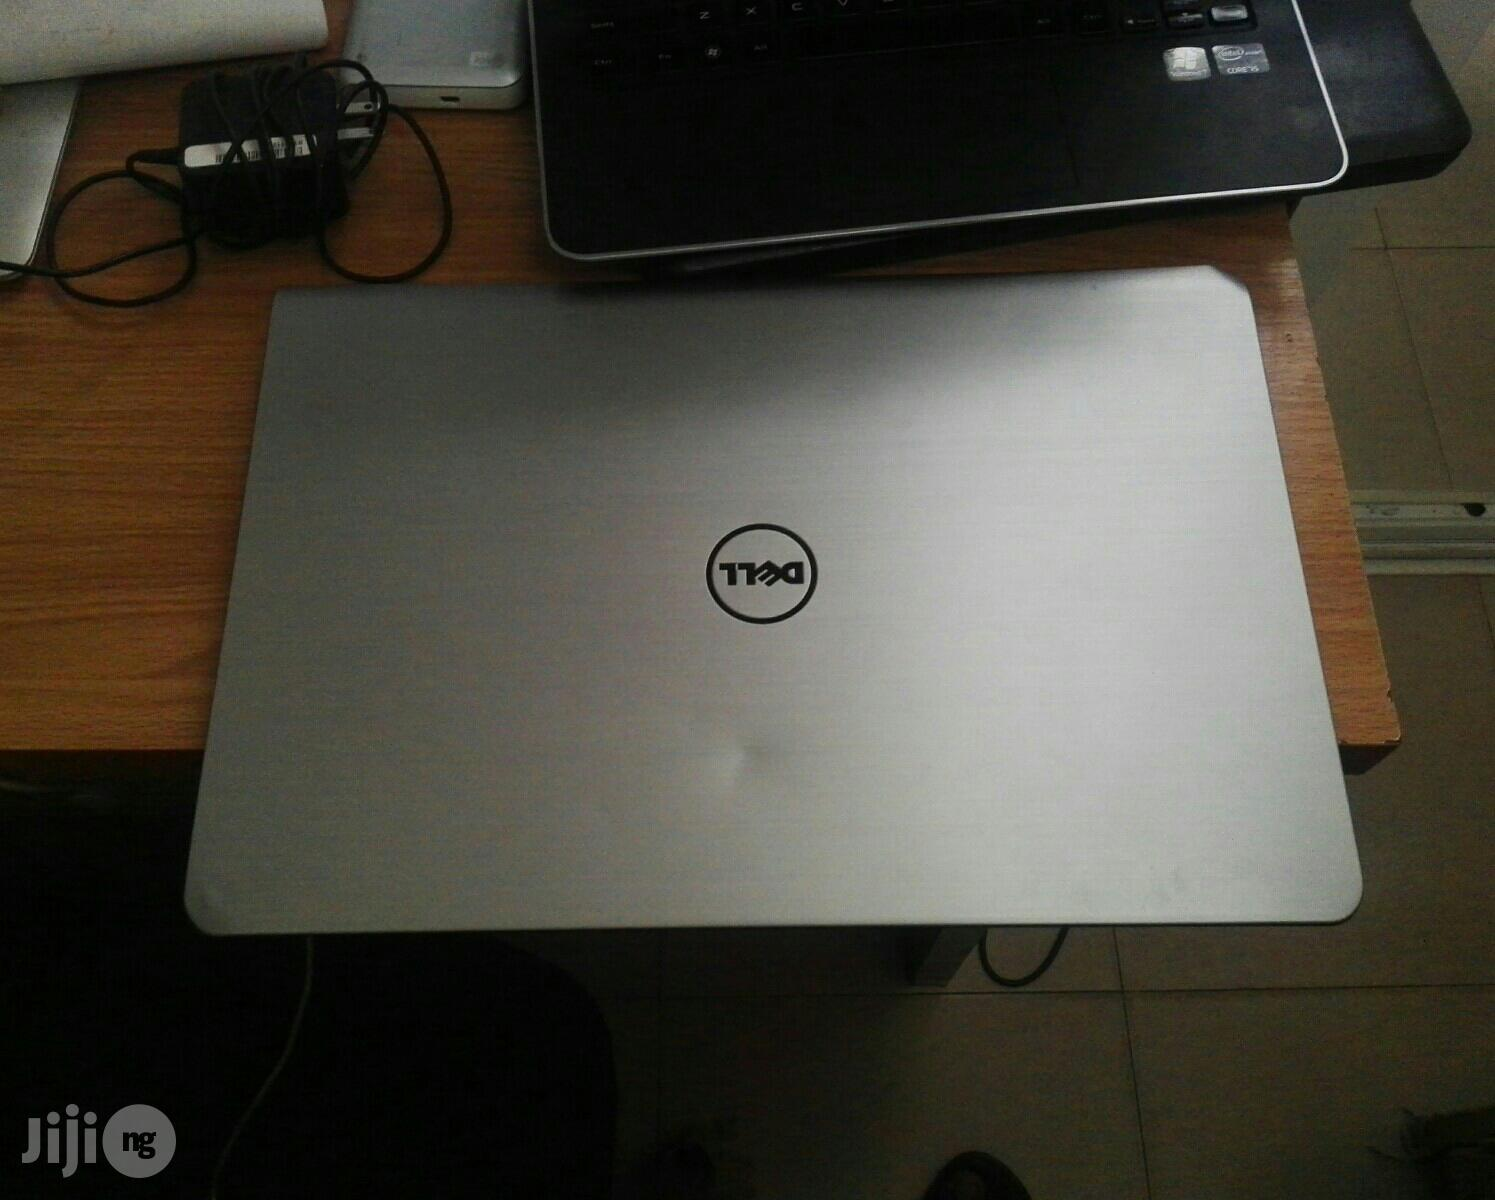 UK Use Dell Inspiron 15.6inchs 500Gb Core I7 8Gb Ram   Laptops & Computers for sale in Ikeja, Lagos State, Nigeria